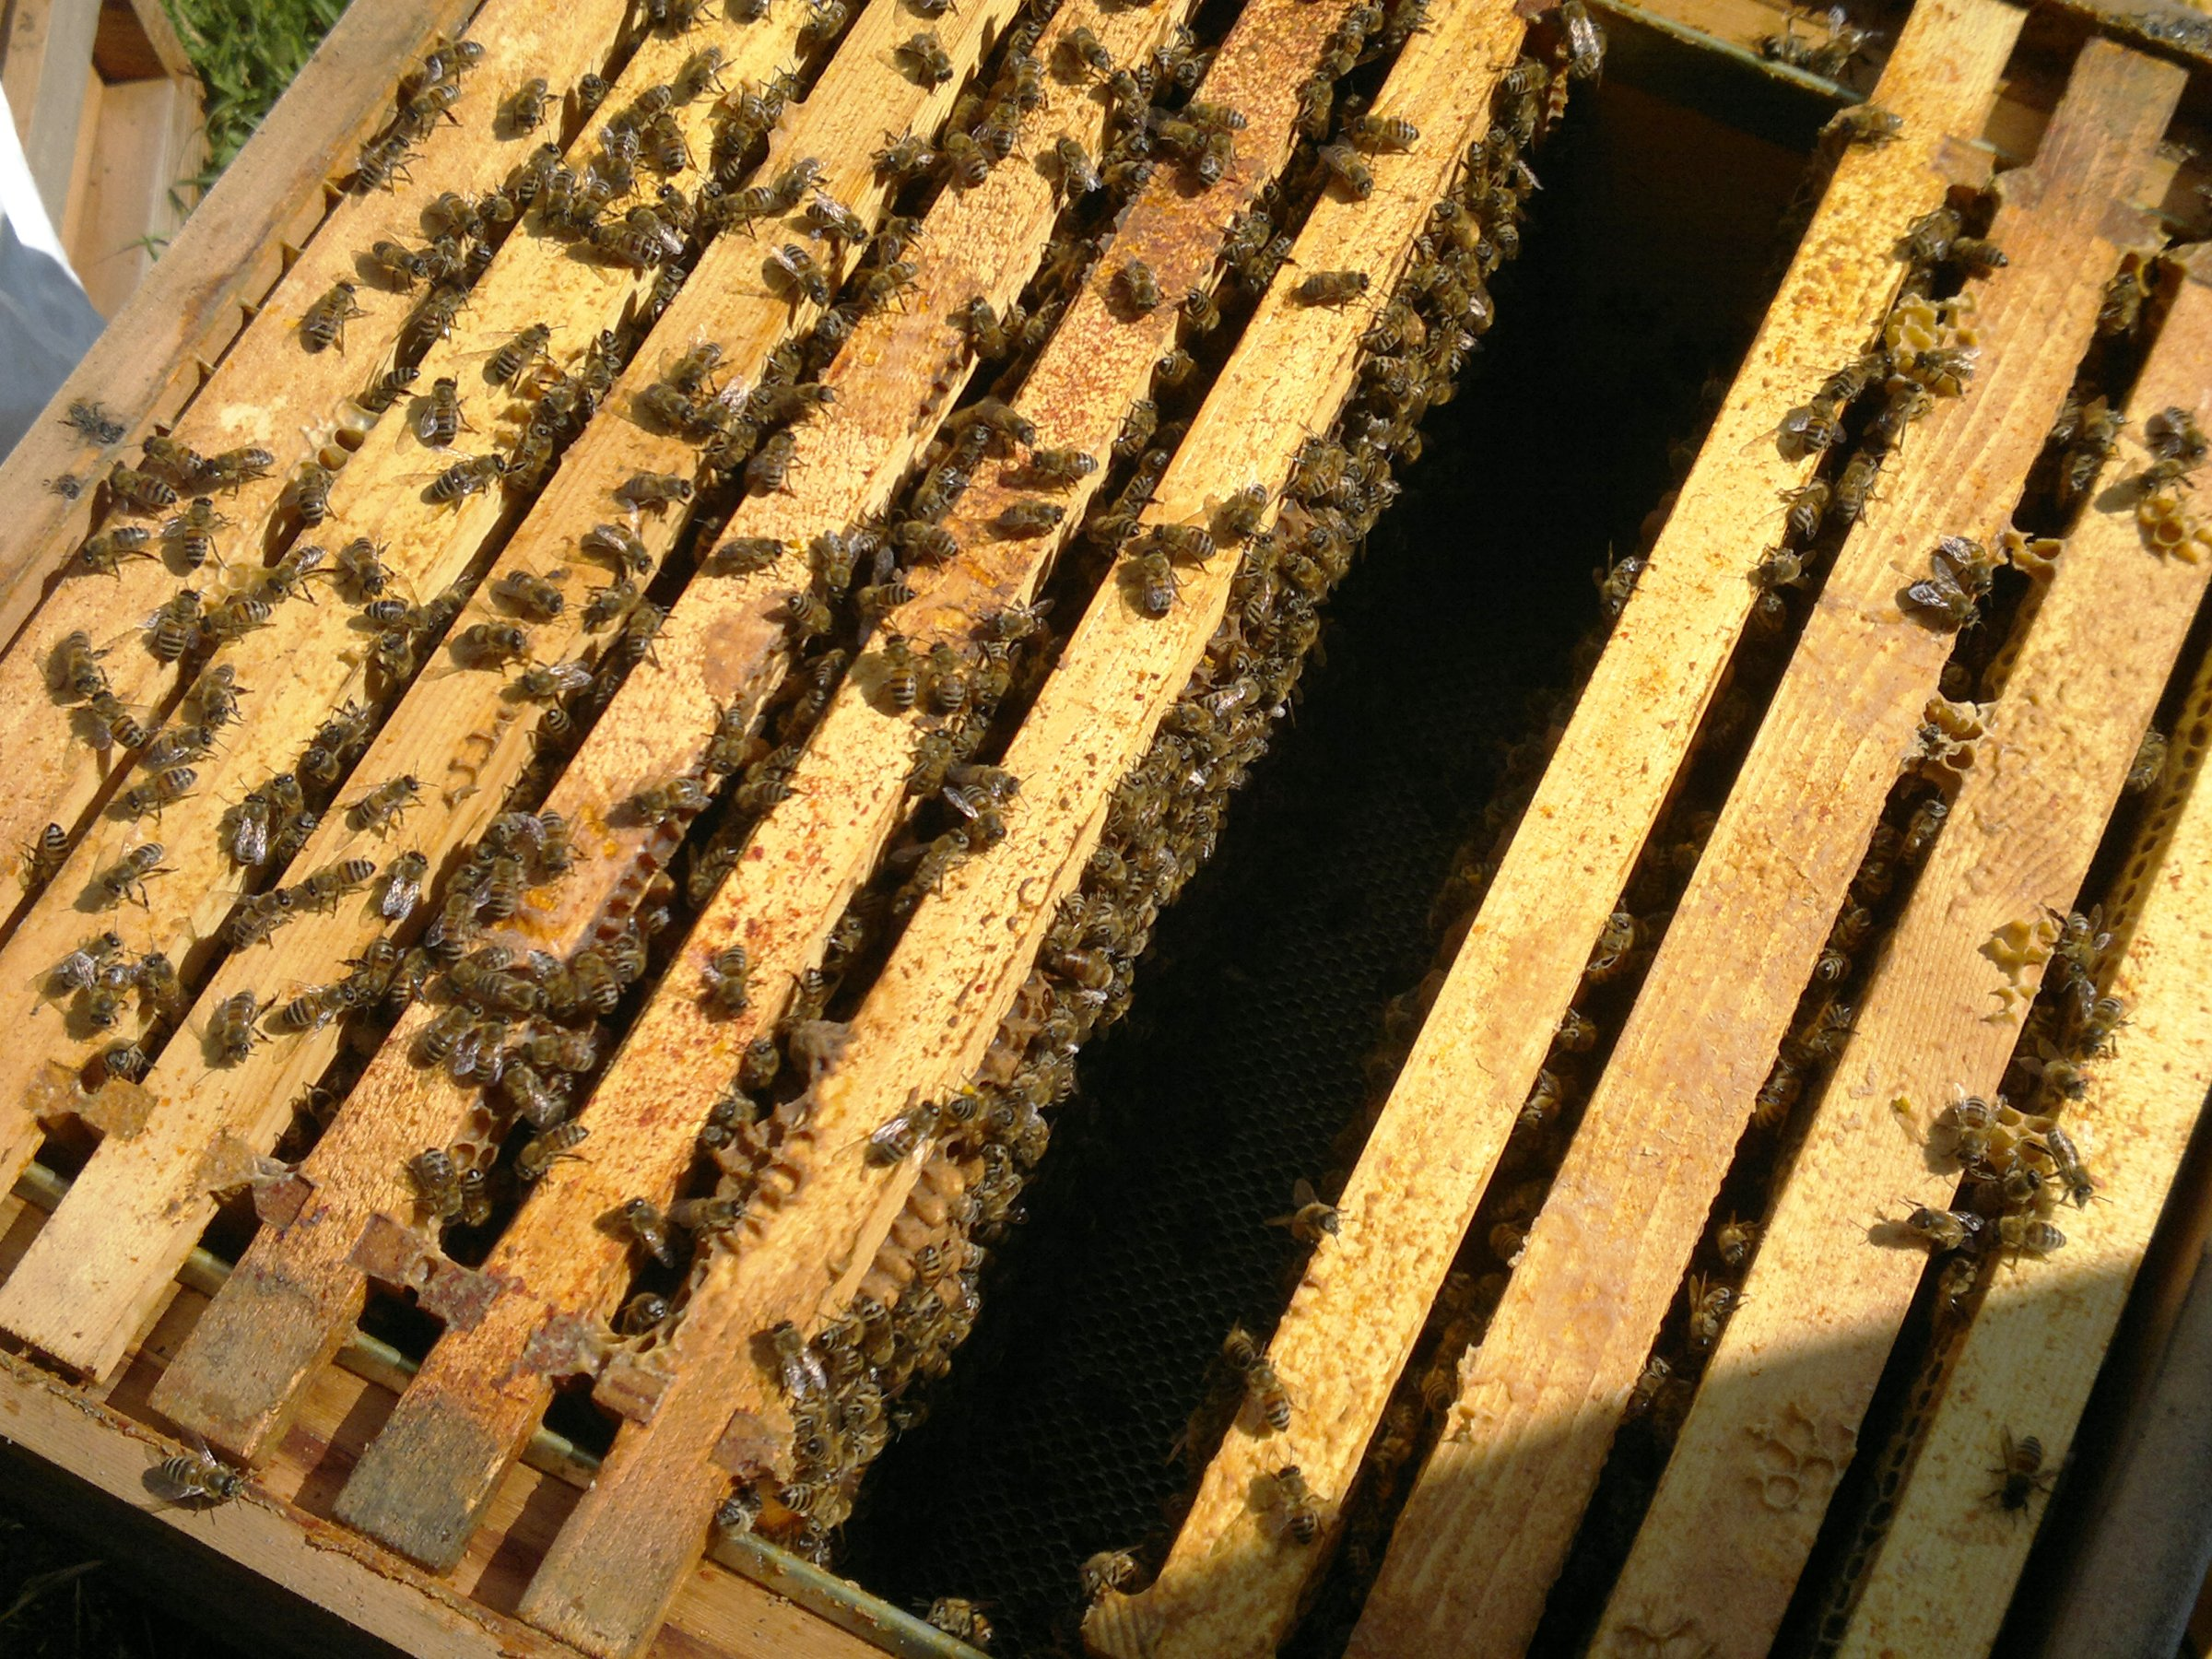 The second brood box is also packed with bees